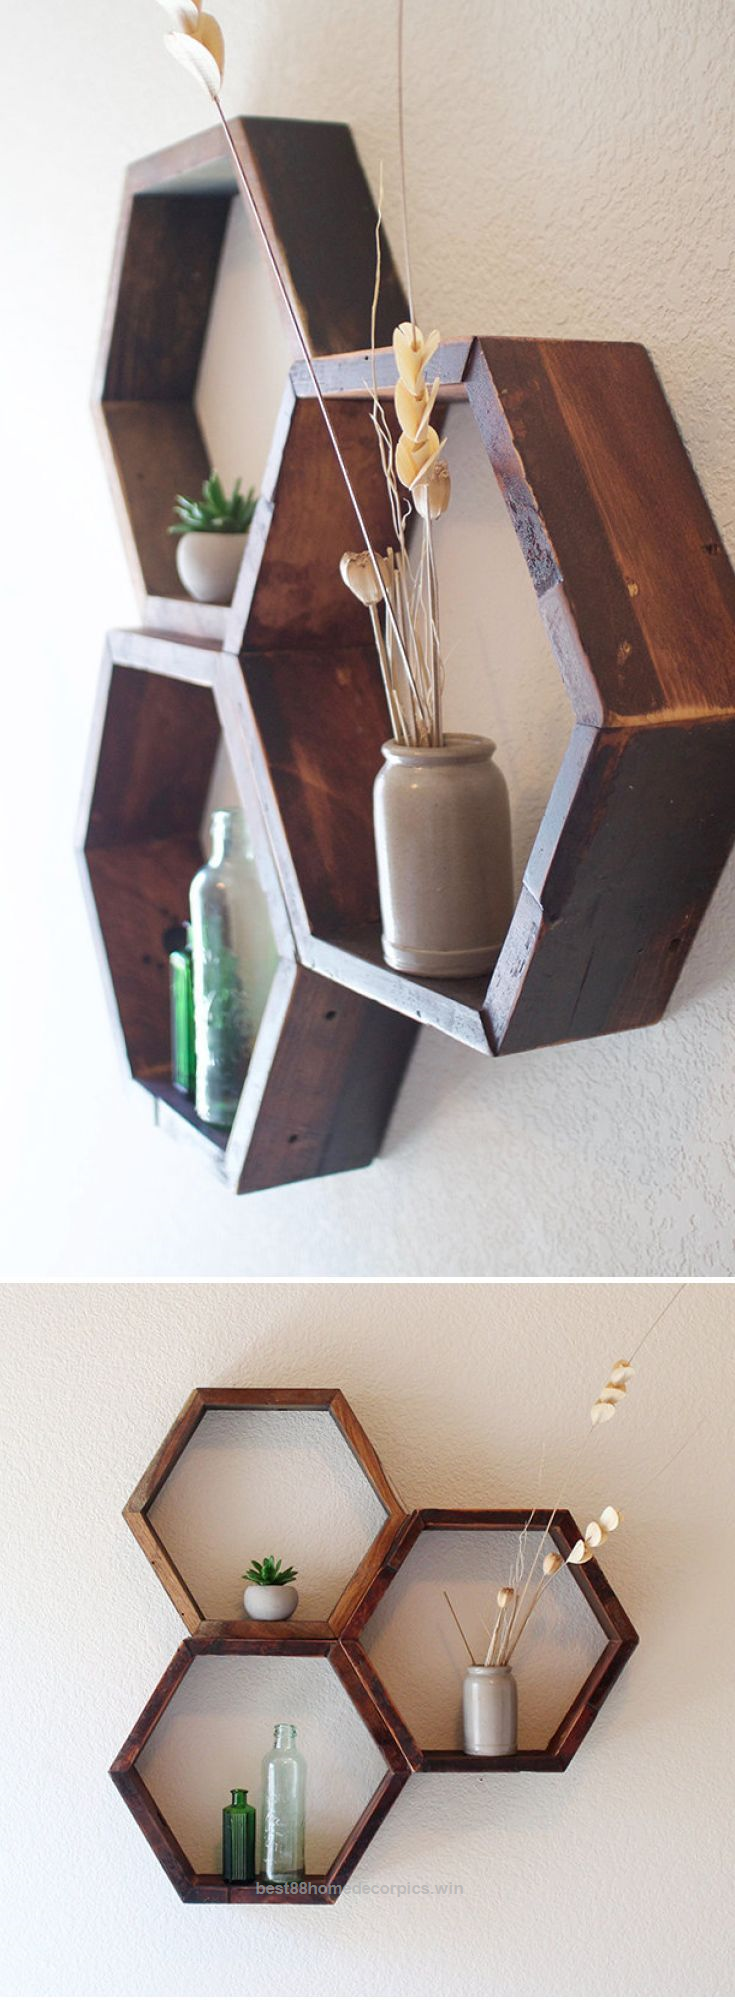 Wooden Crafts To Make And Sell Rustic Wood Decor Ideas Holiday